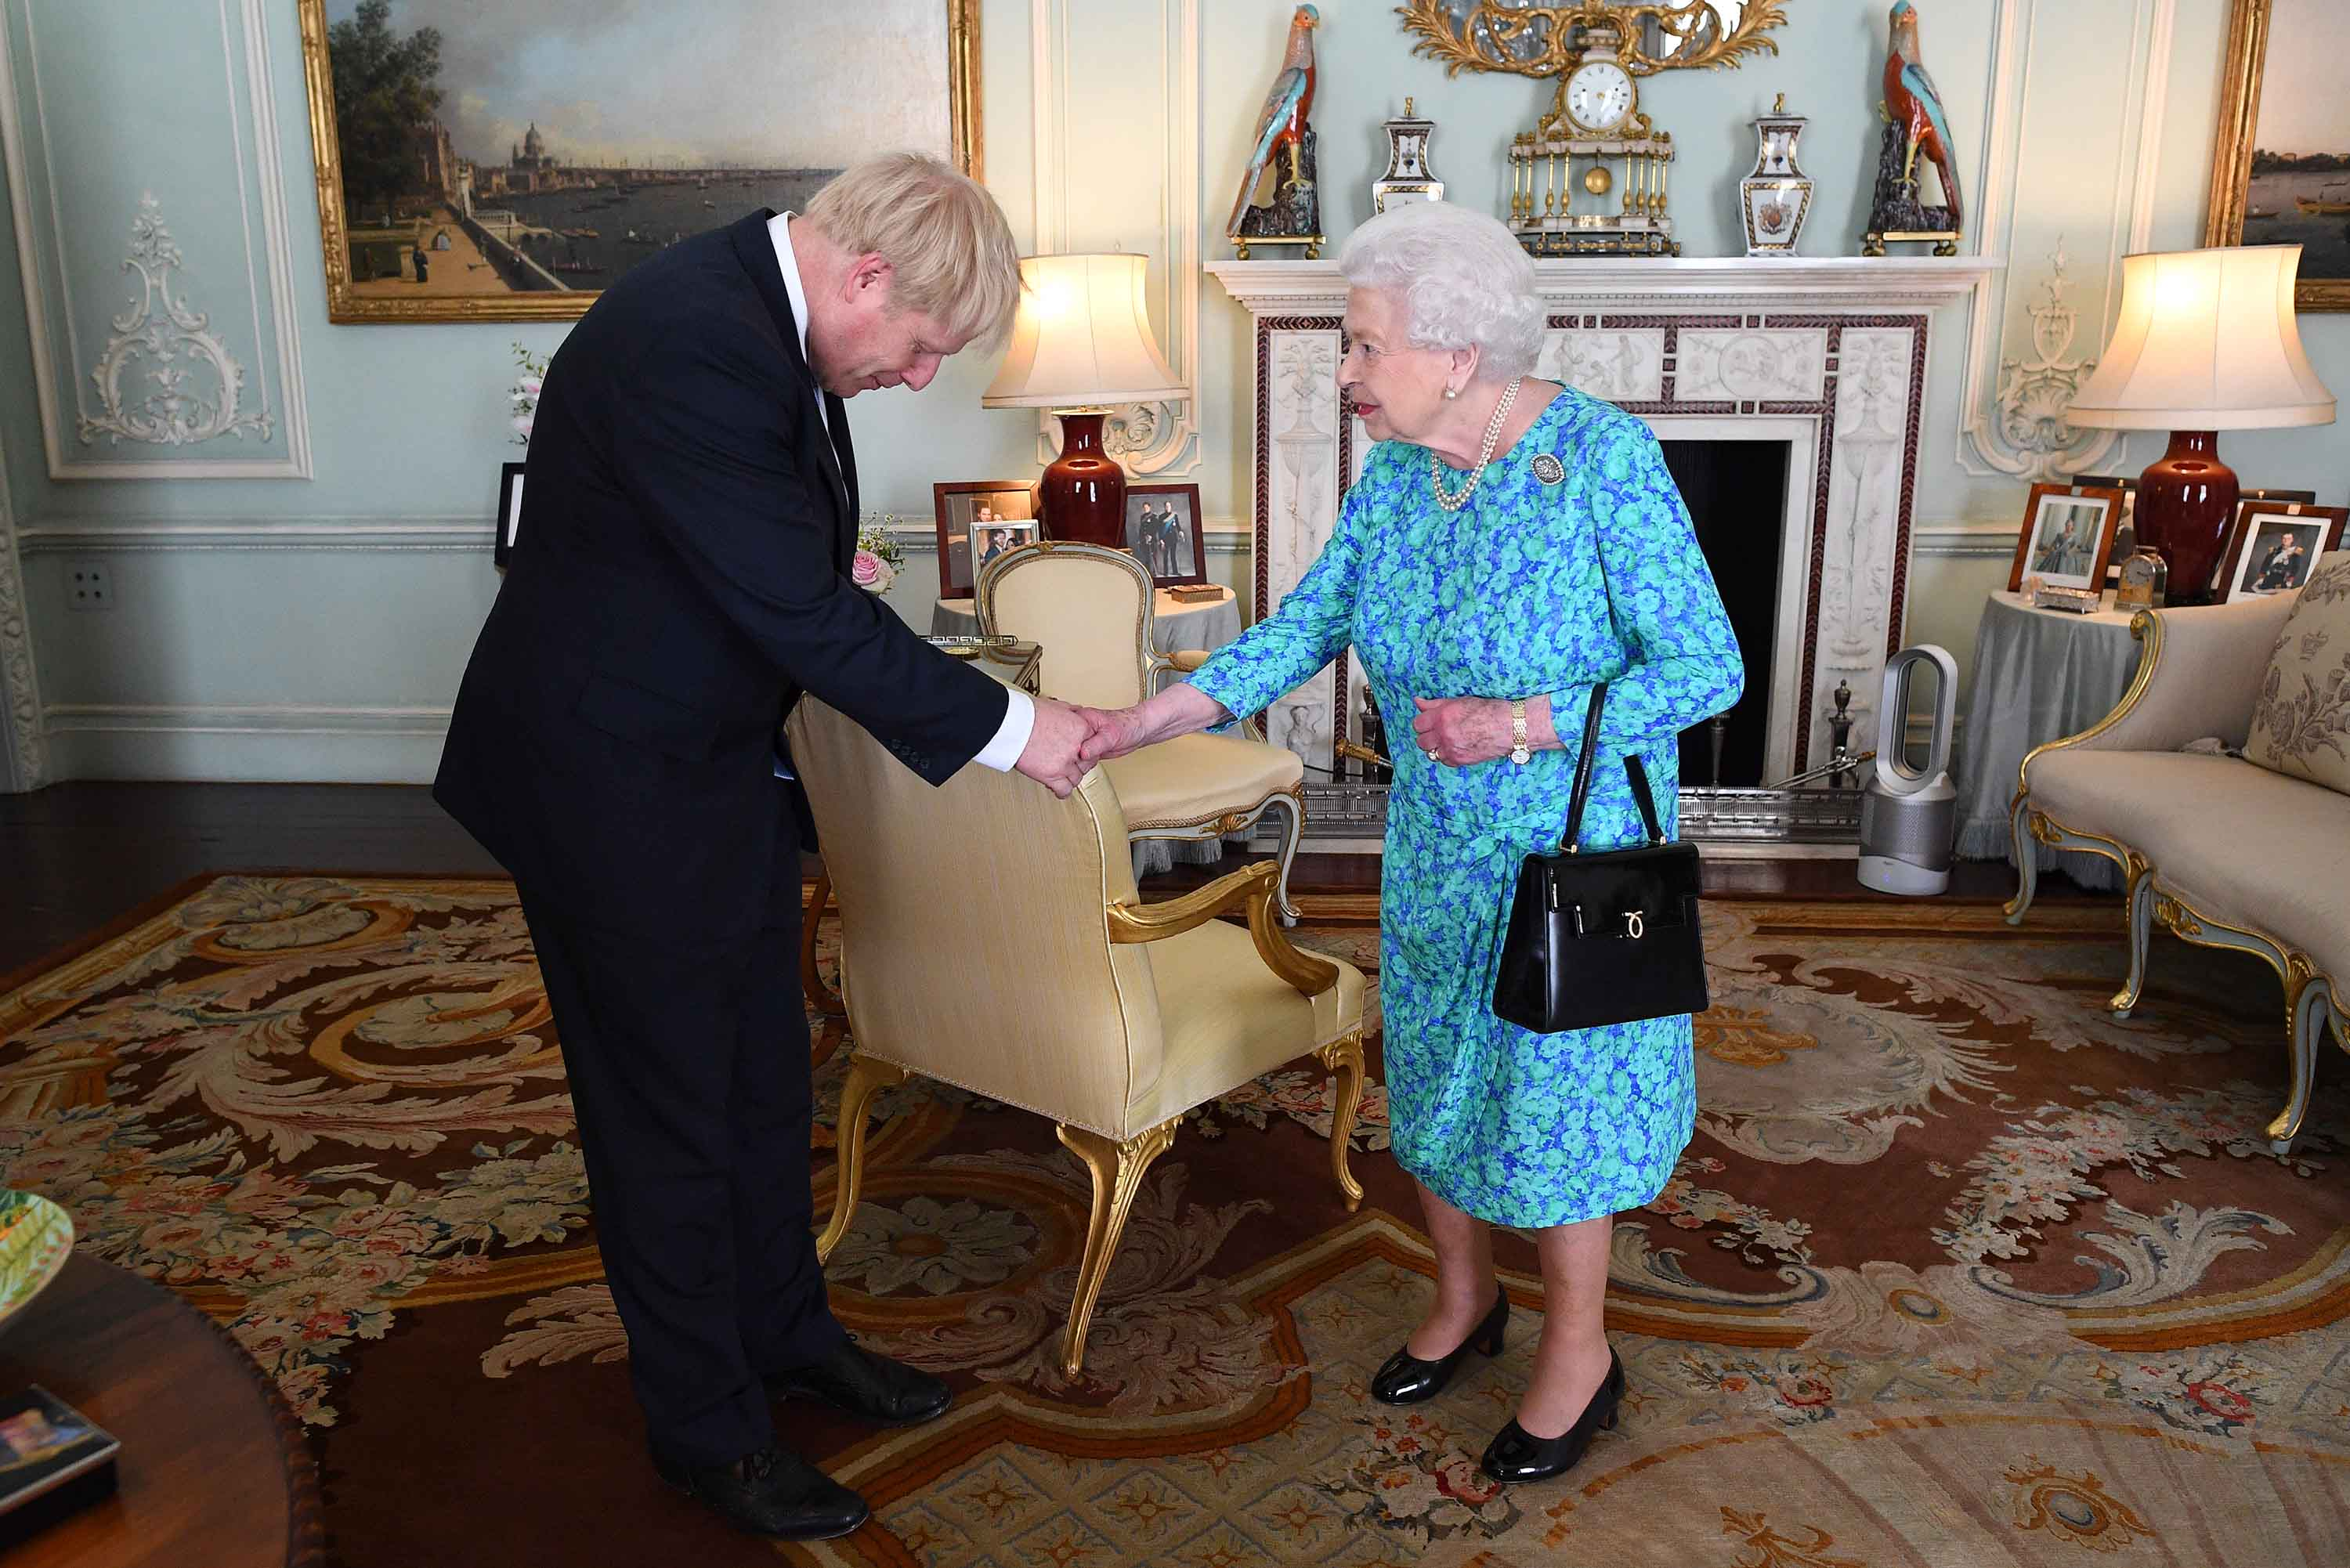 The Queen greets Boris Johnson in the Buckingham Palace.